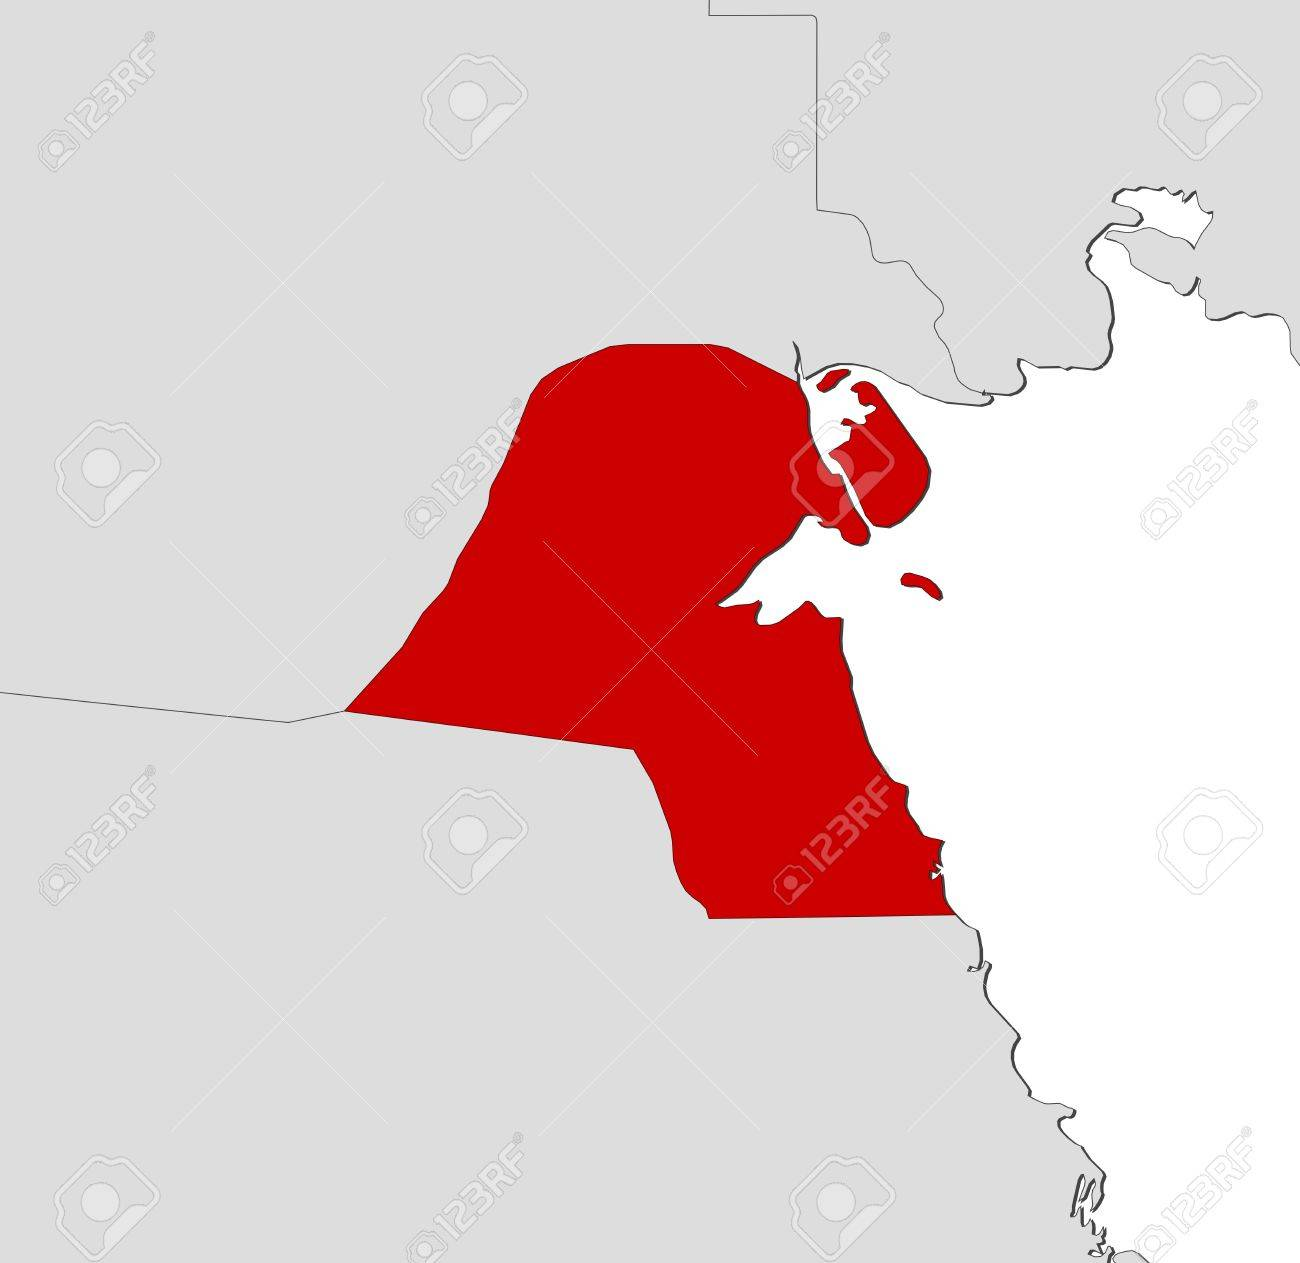 Kuwait Political Map.Political Map Of Kuwait With The Several Governorates Royalty Free